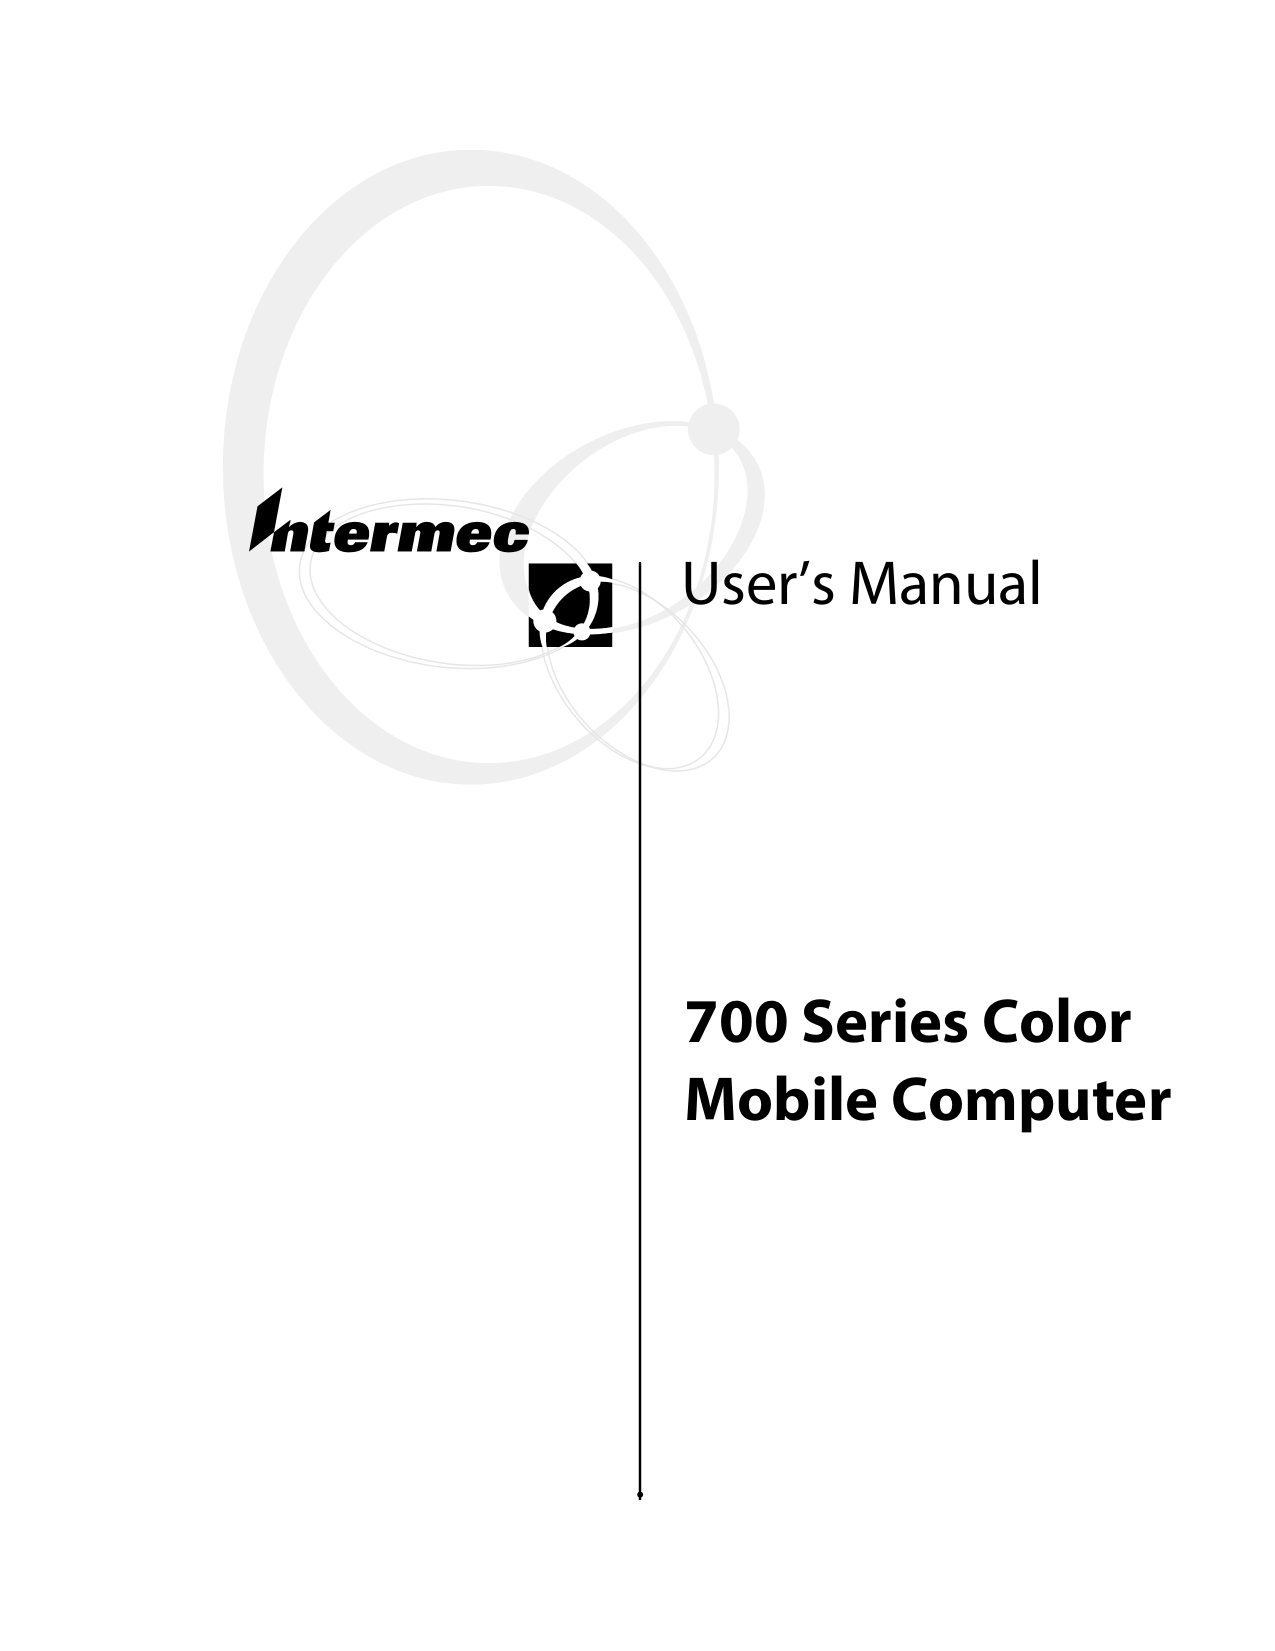 Download free pdf for Intermec 700 Series 761B Cell Phone